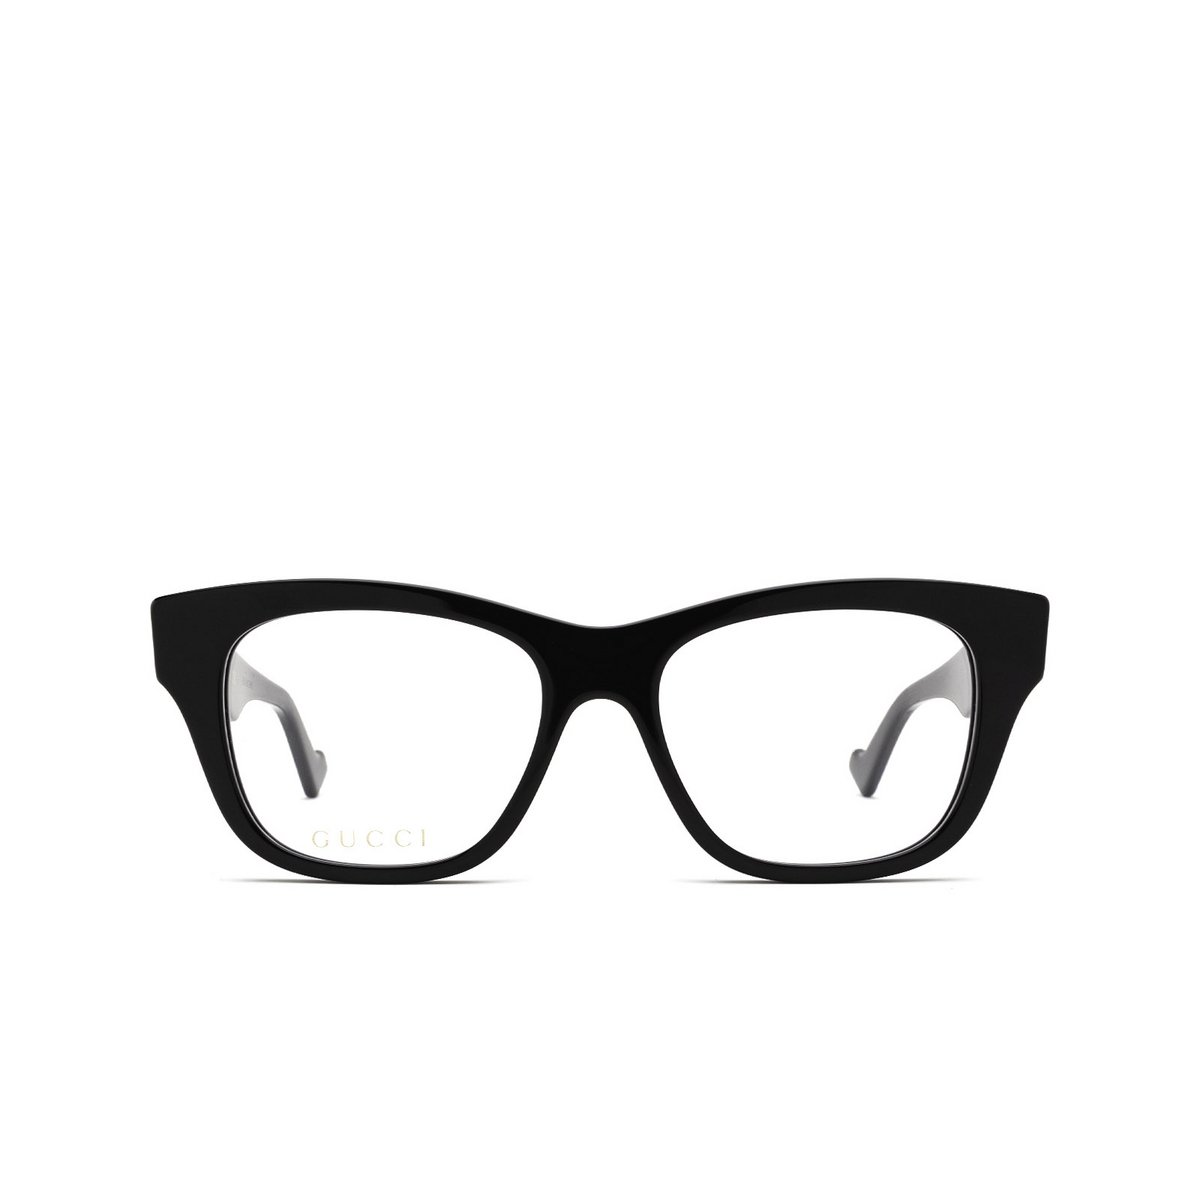 Gucci® Cat-eye Eyeglasses: GG0999O color Black 001 - front view.